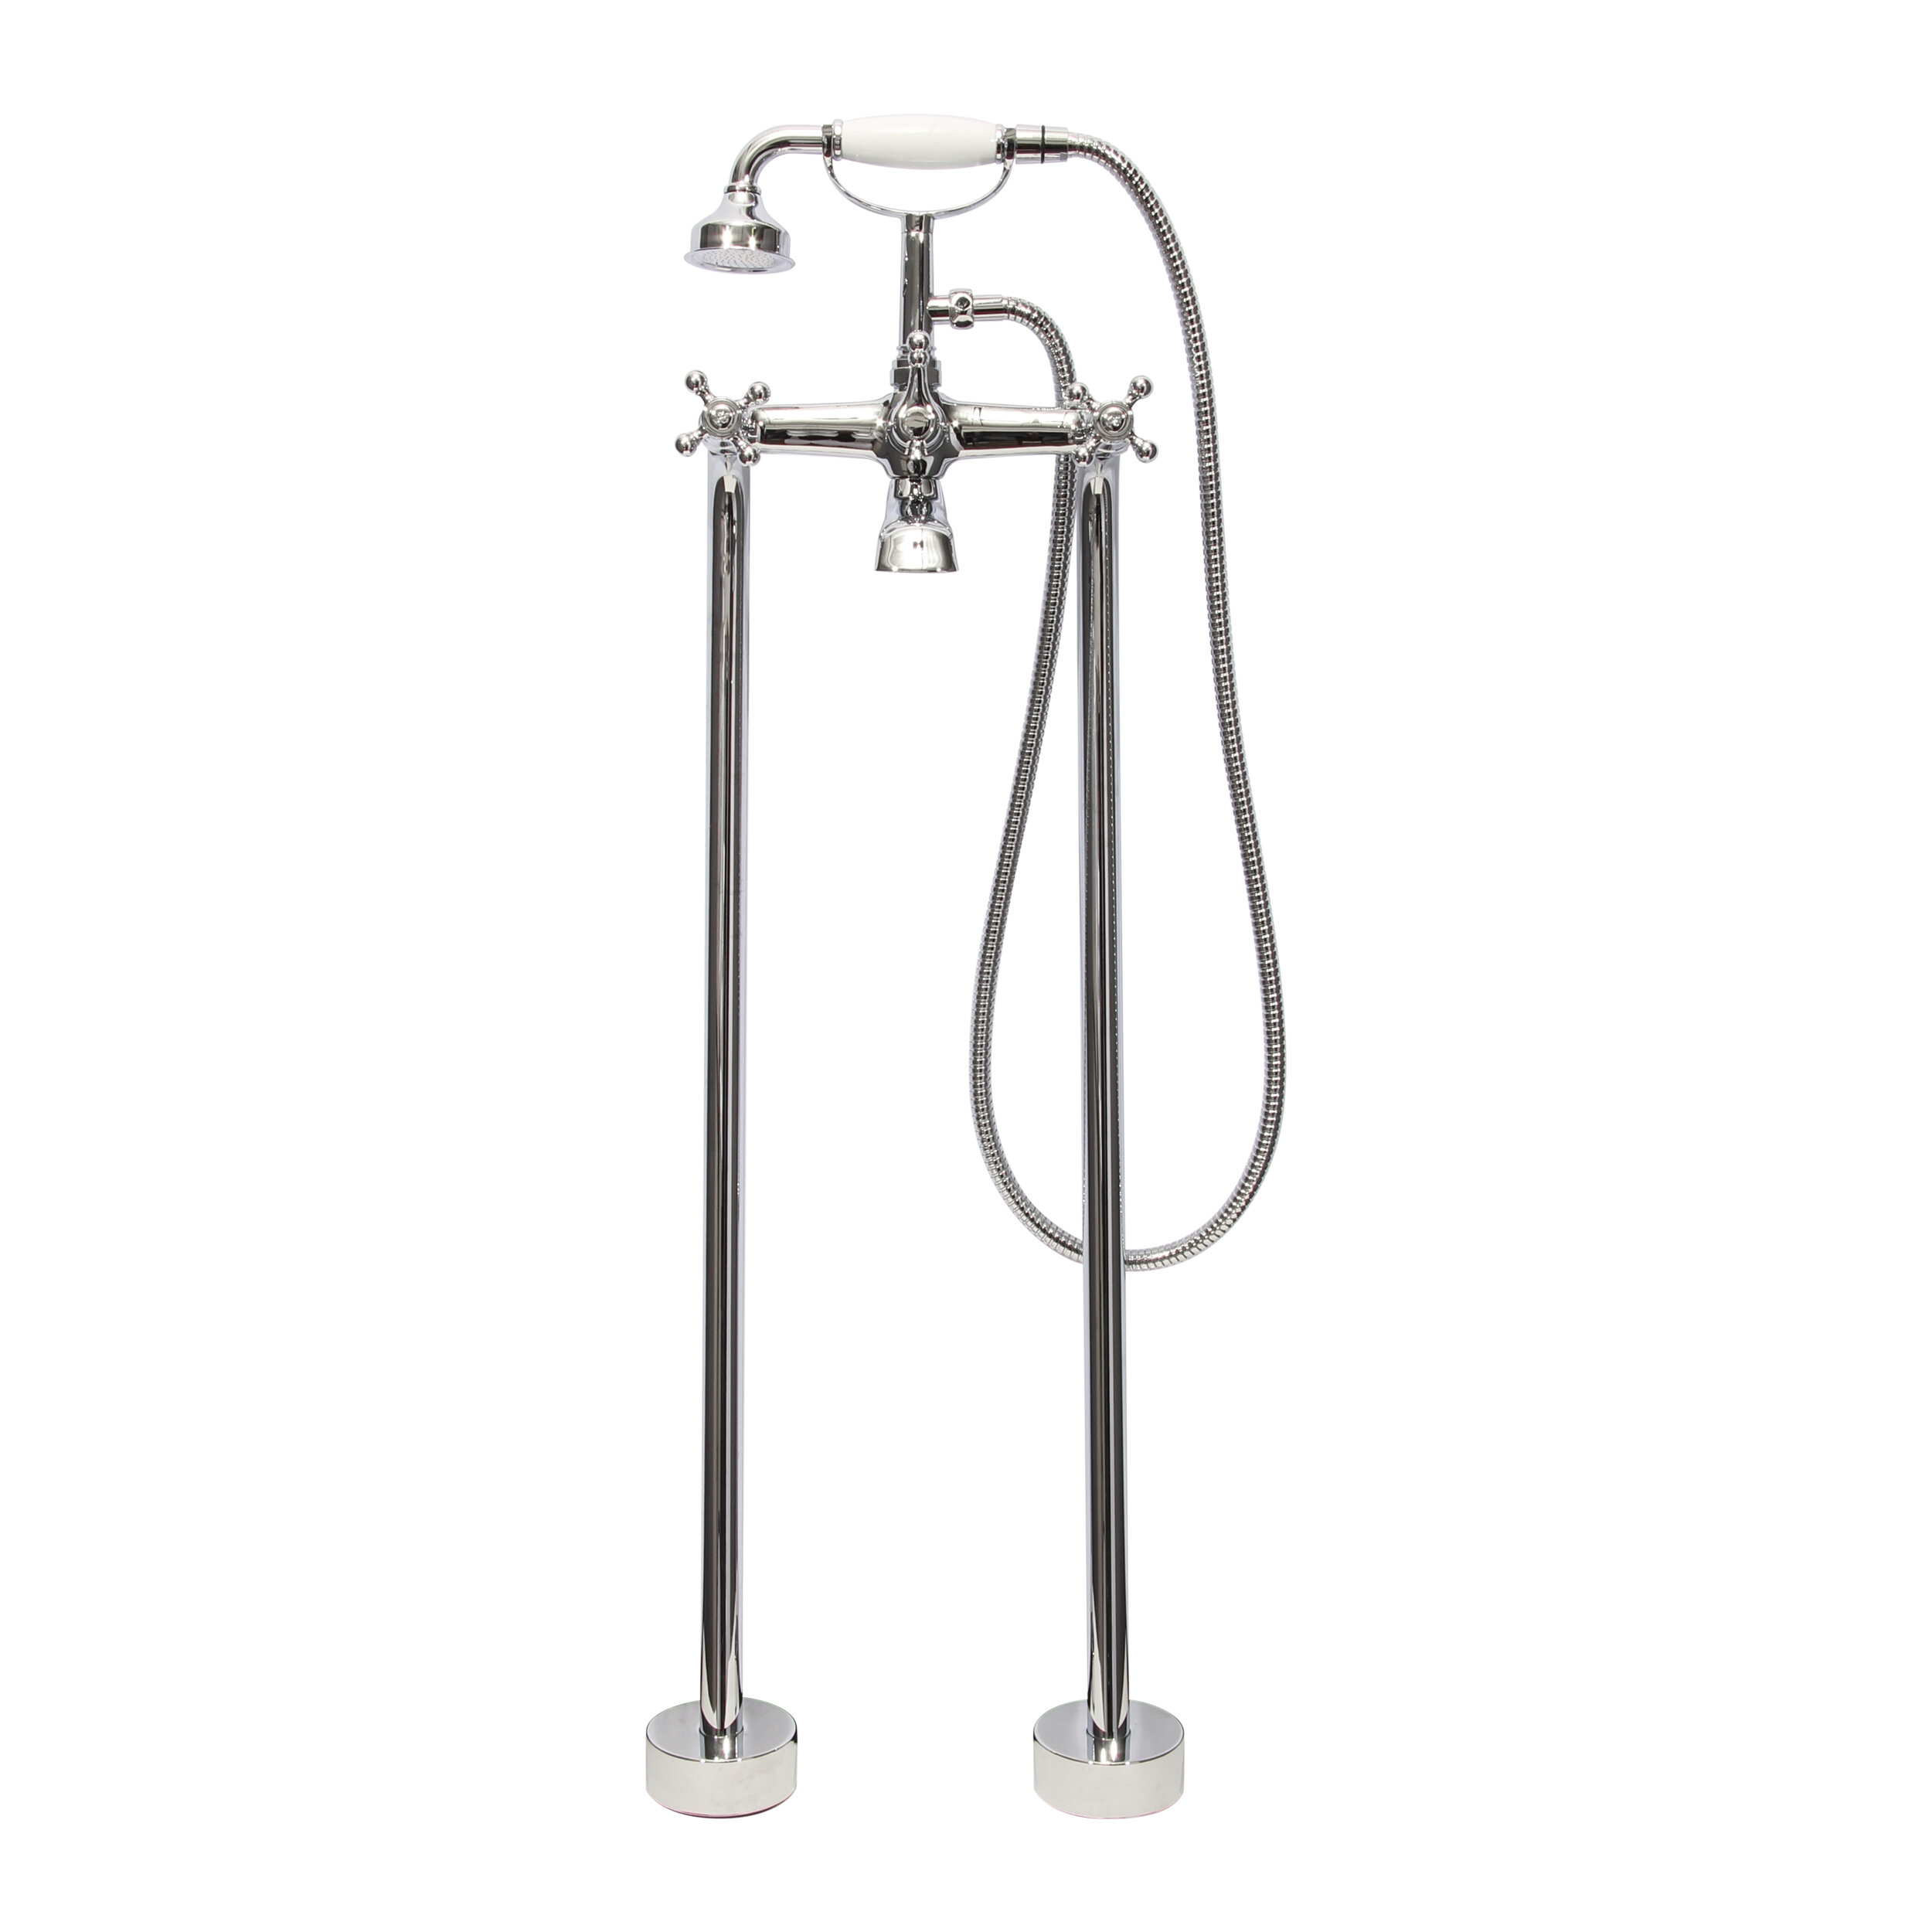 Dyconn Faucet Double Handle Floor Mount Tub Filler Faucet with Hand ...